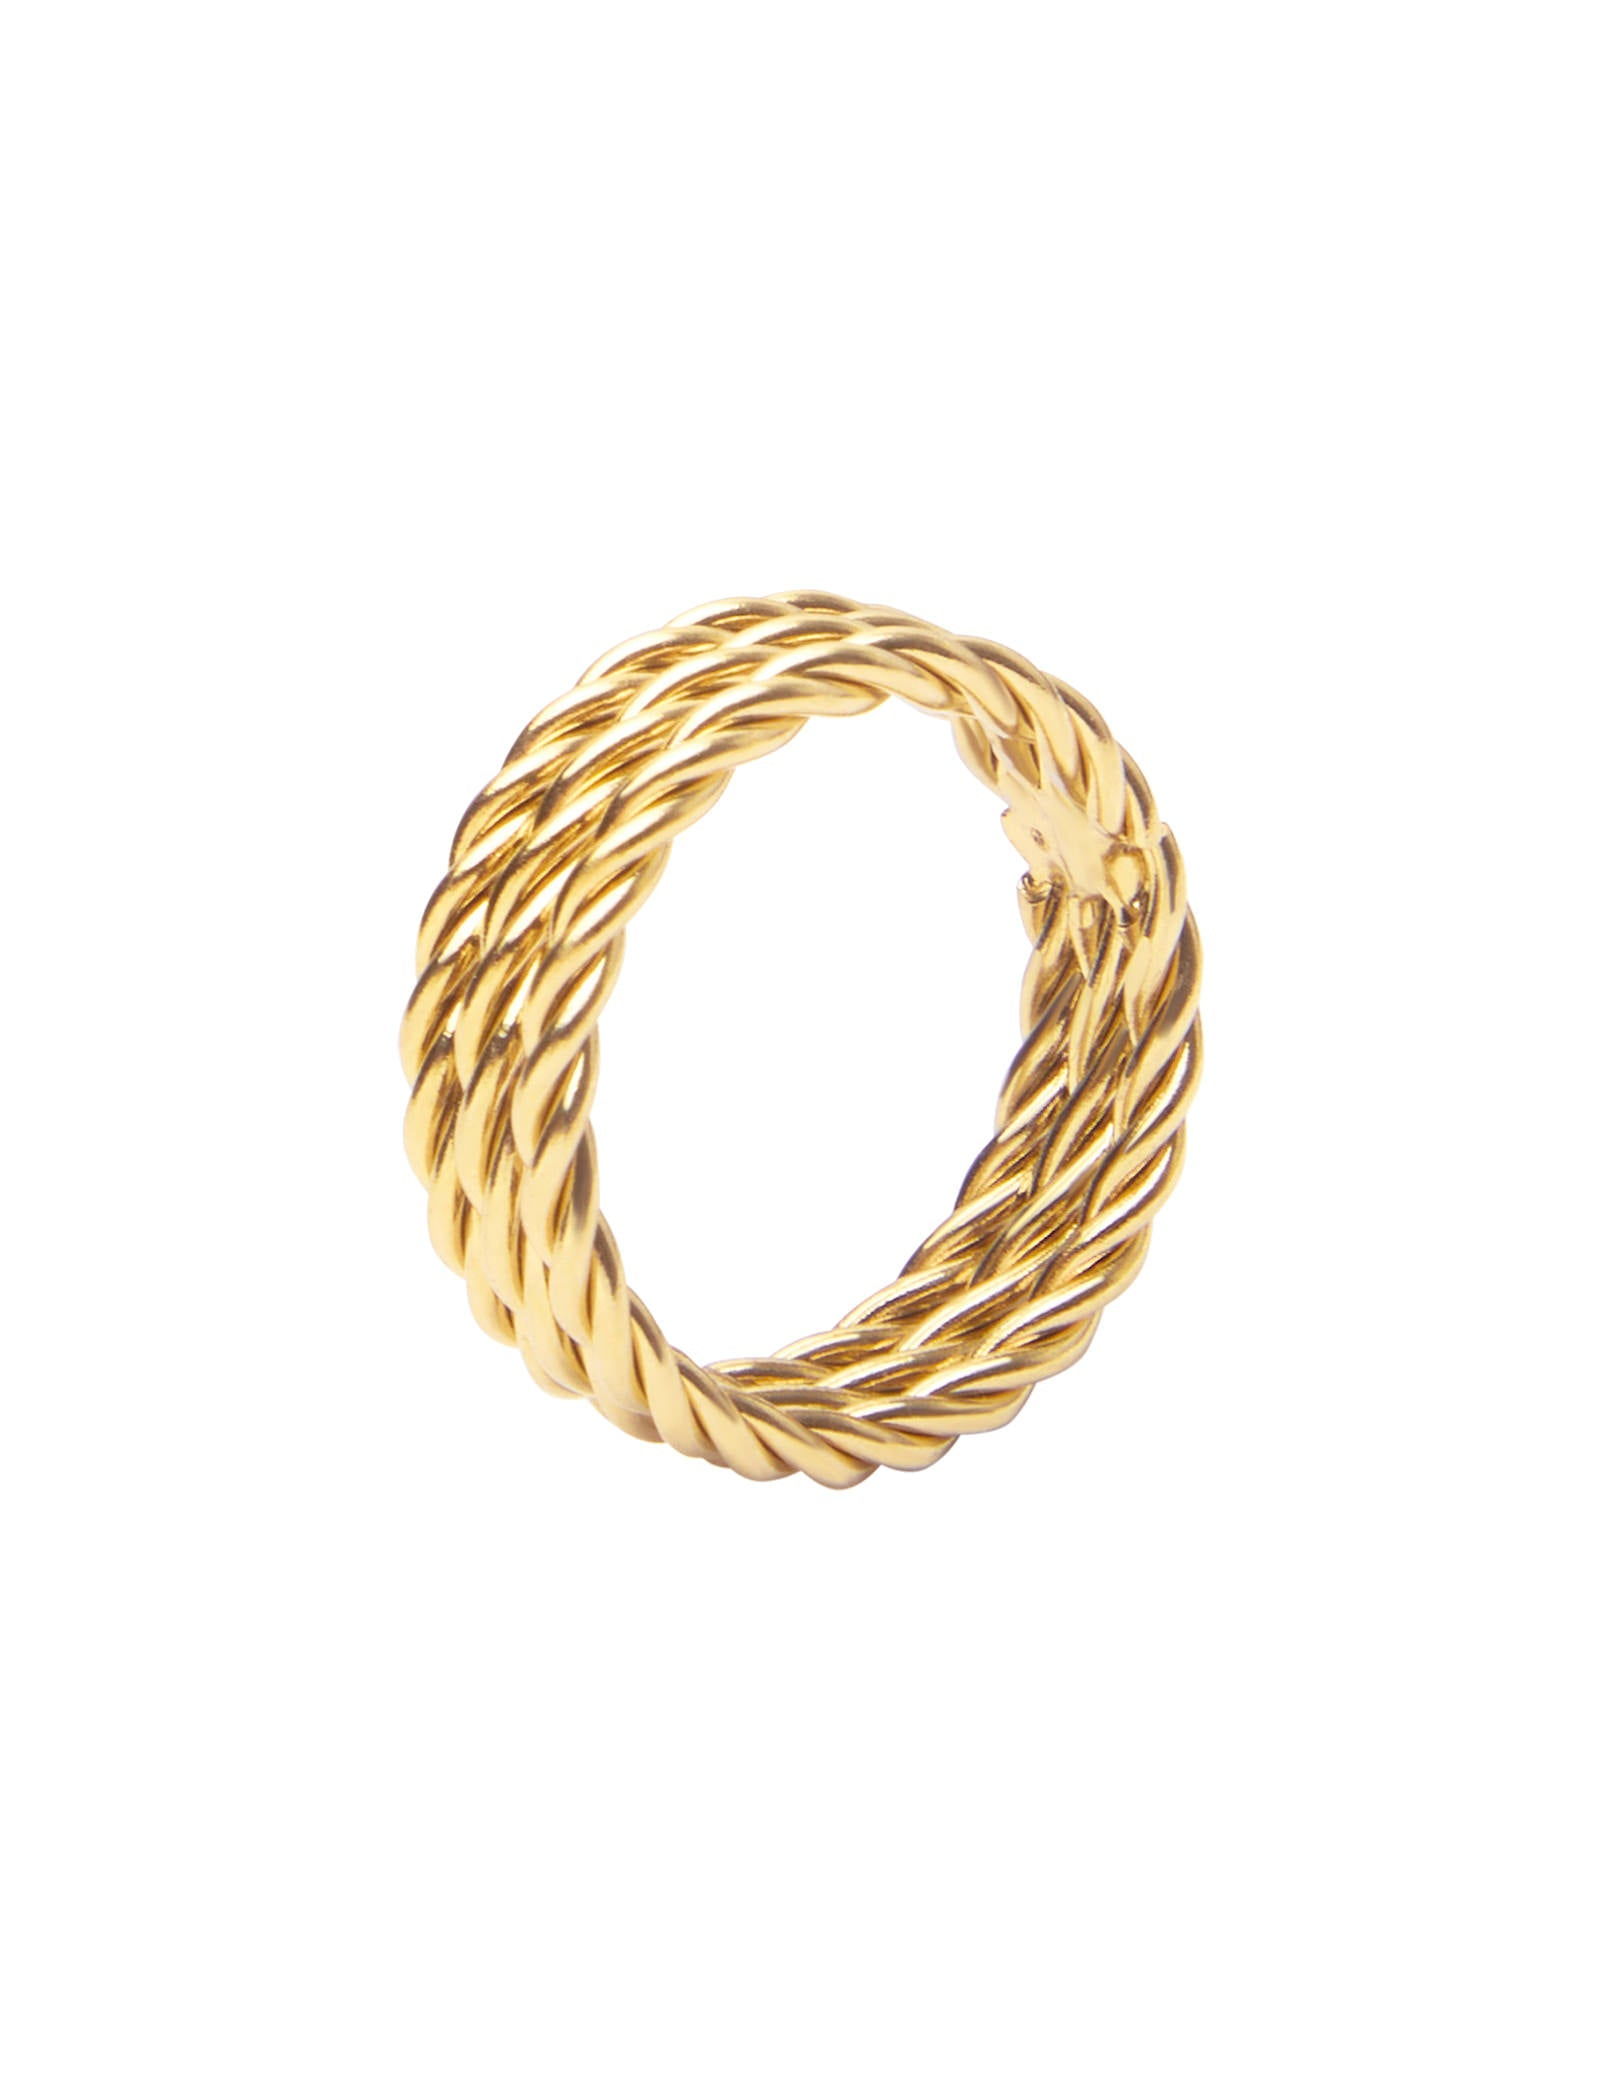 Pastiche Jewellery - Tessa Ring - Yellow Gold